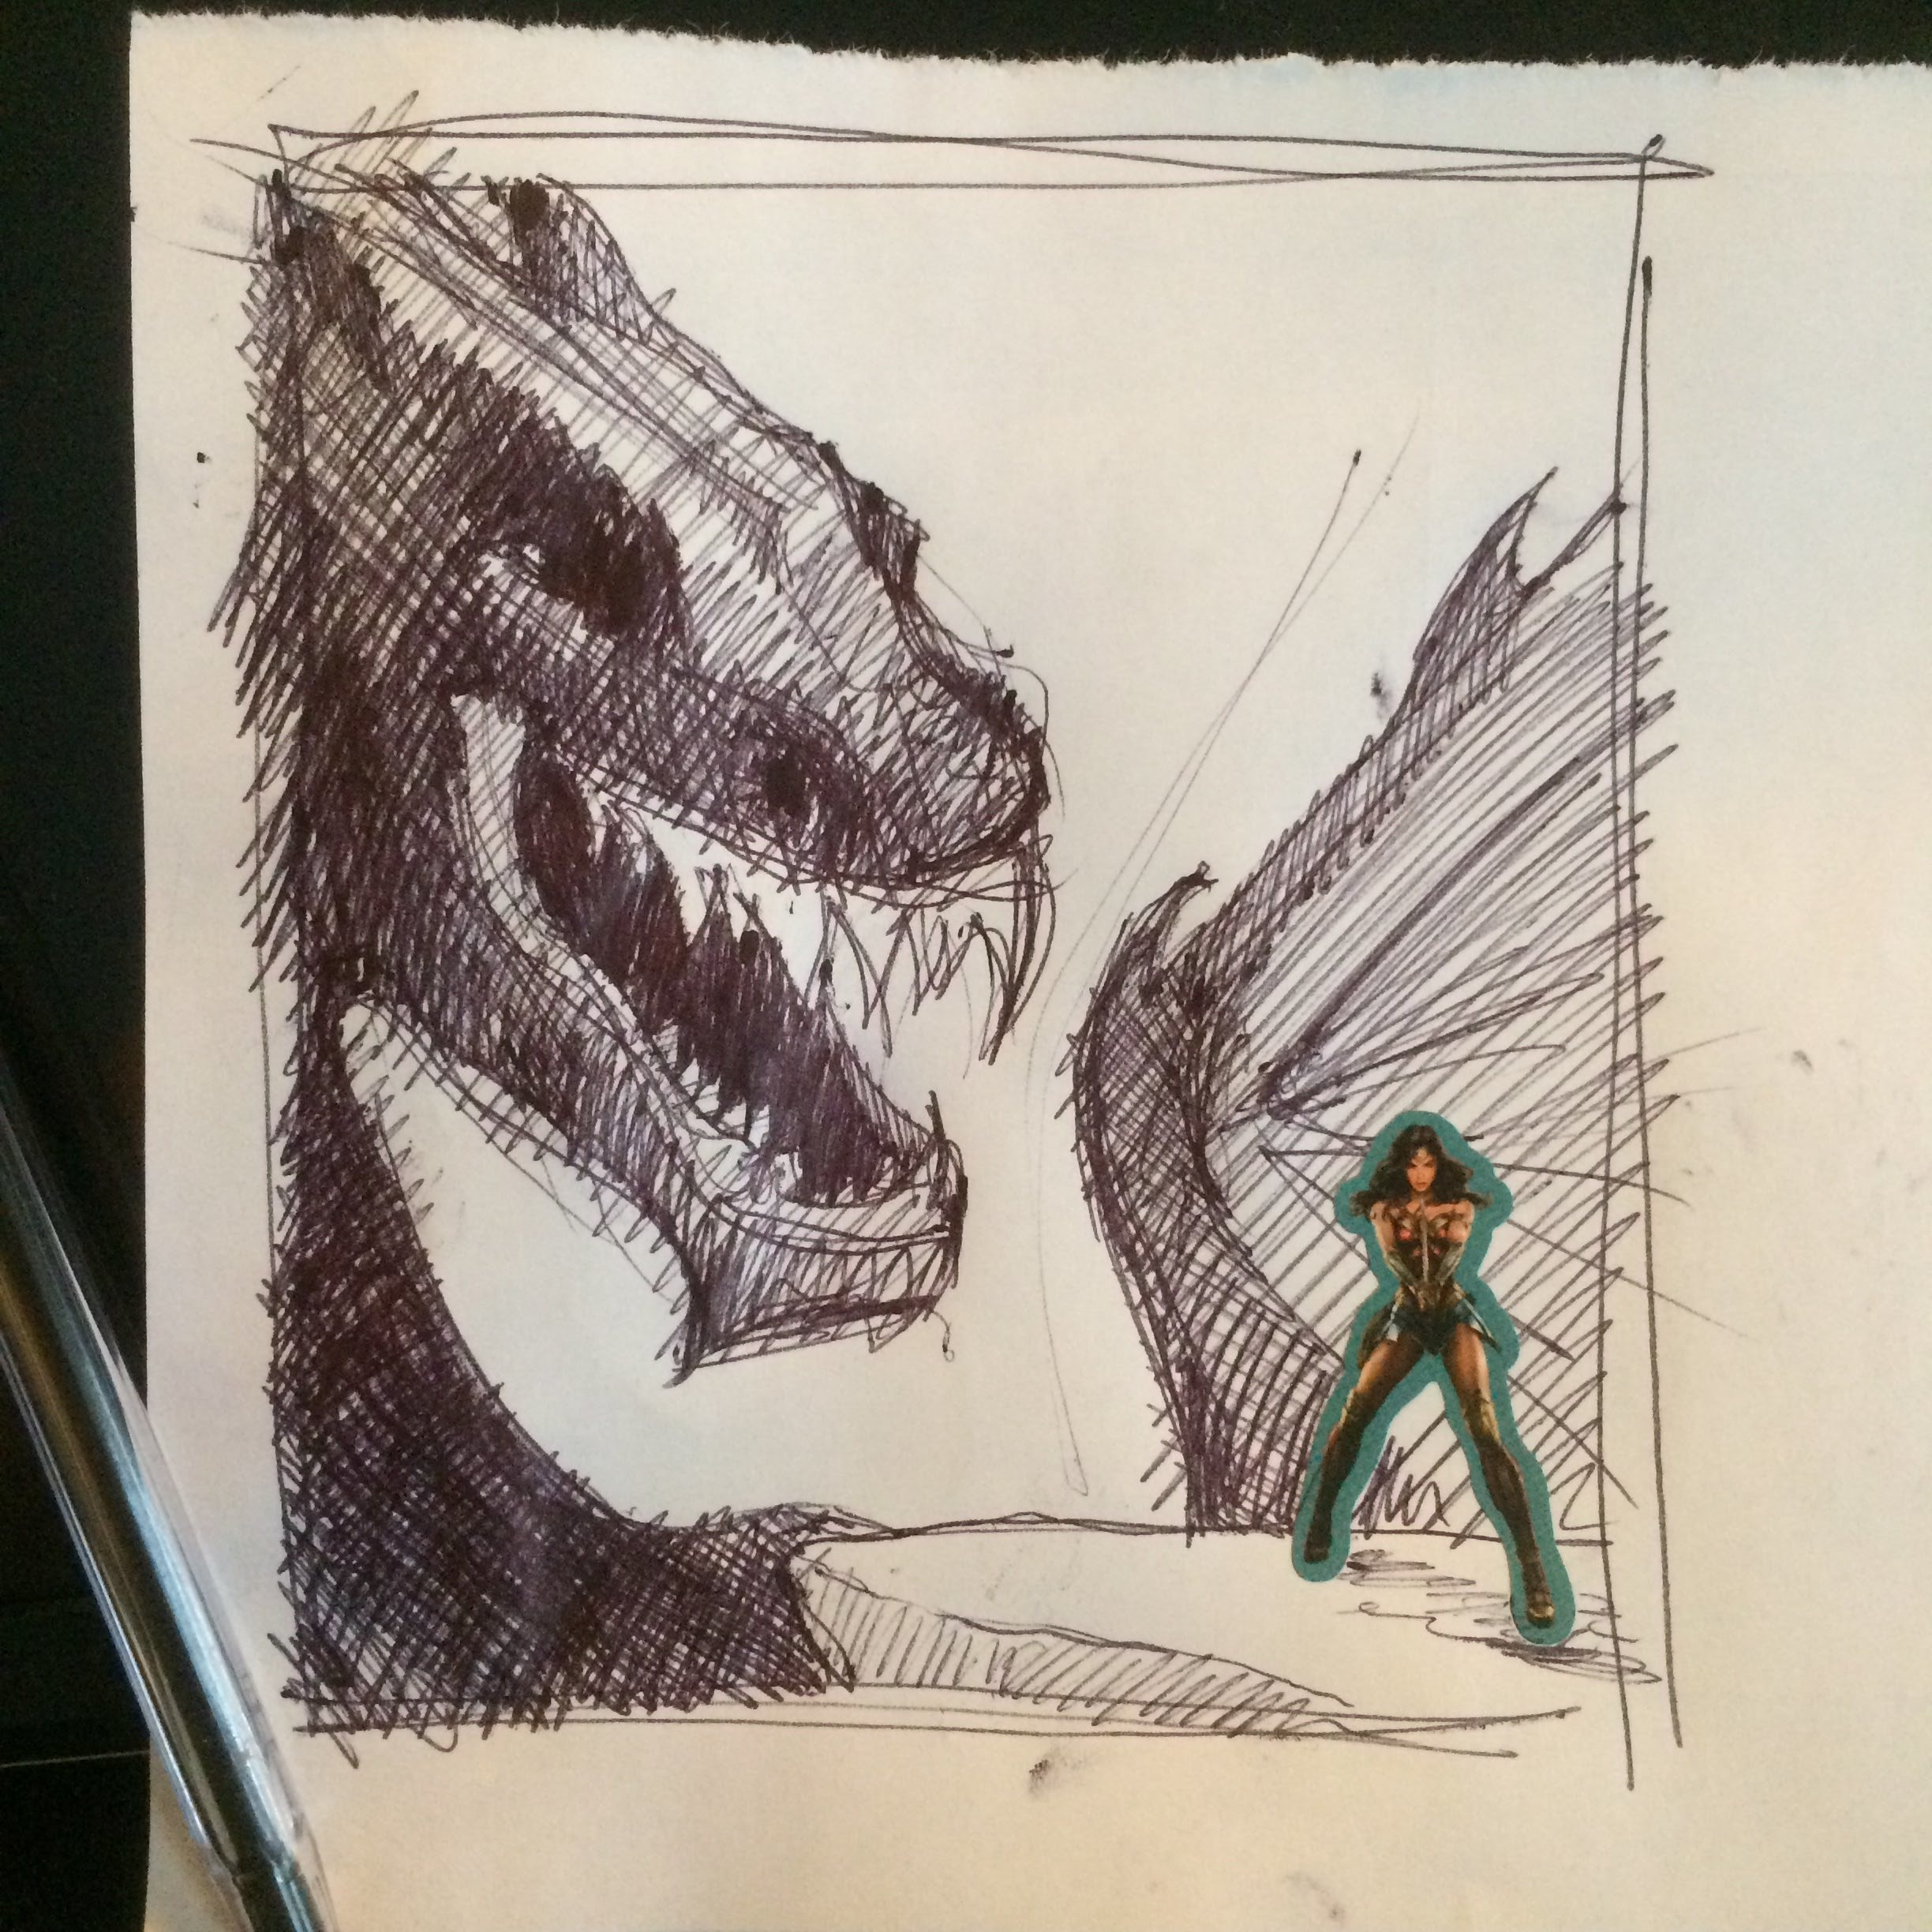 140. December 11, 2017 - Fairy tales do not tell children dragons exist. Children already know the dragons exist. Fairy tales tell children the dragons can be killed.